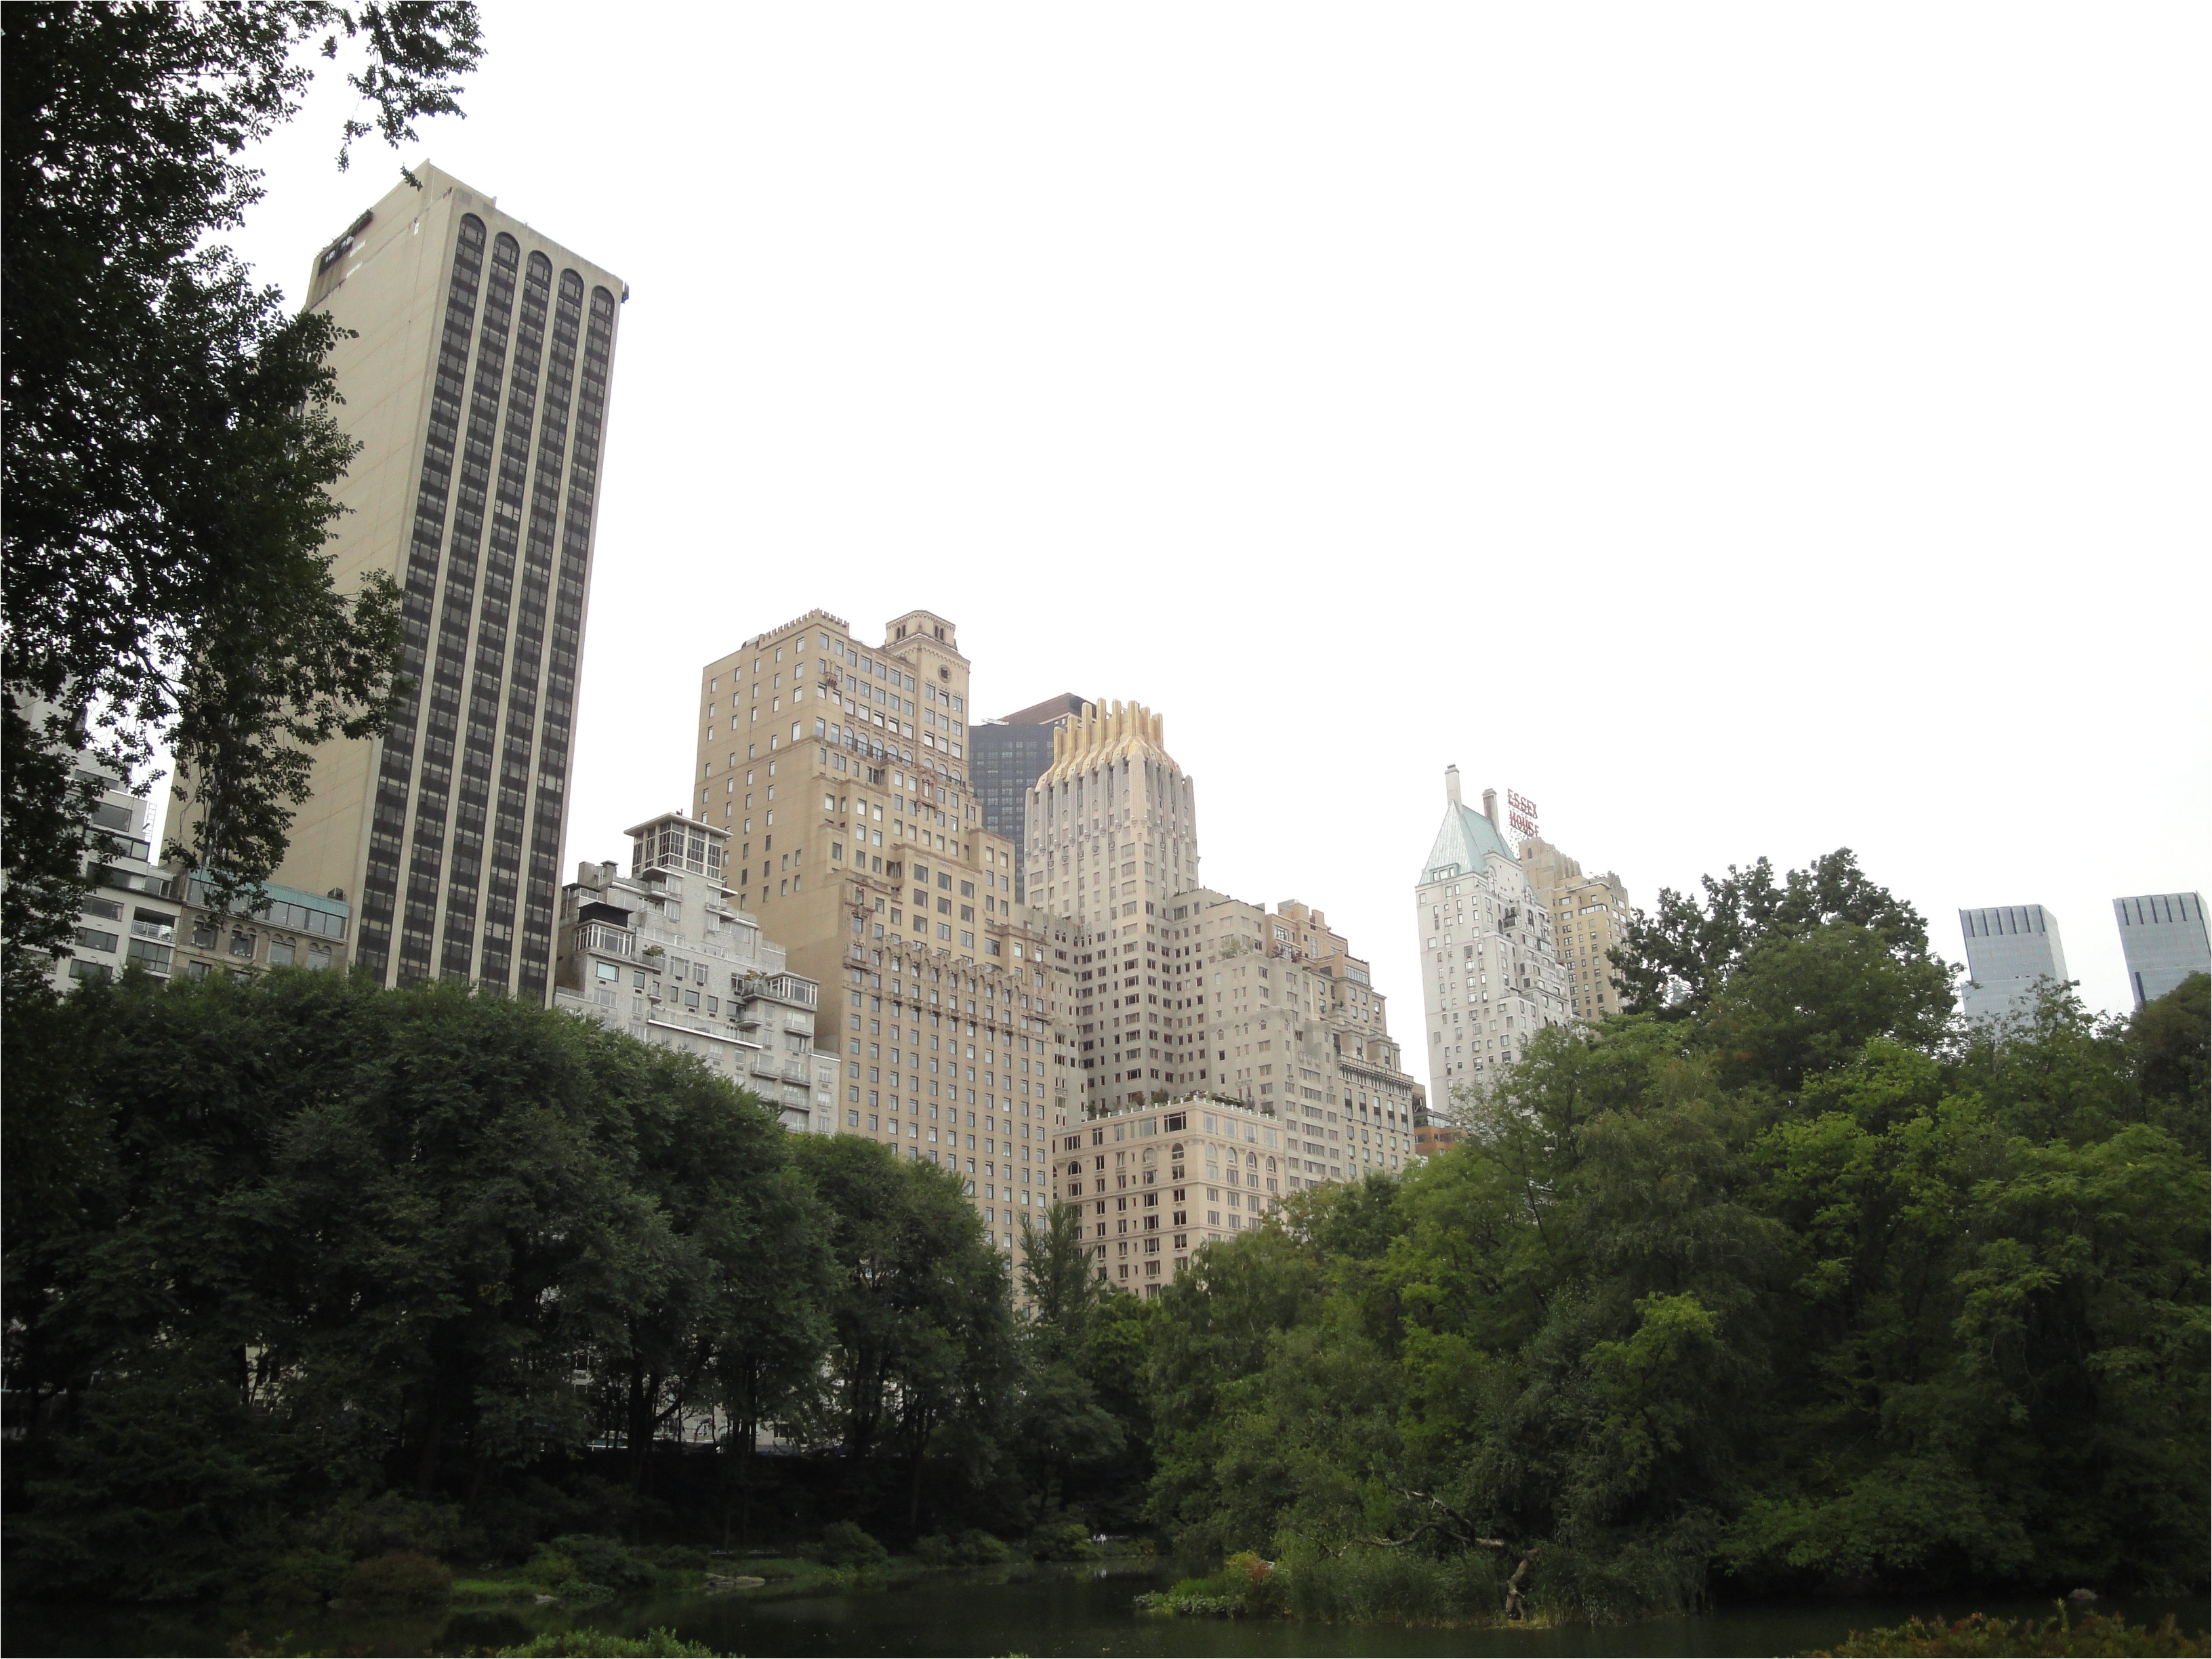 file central park in manhattan new york city united states of america